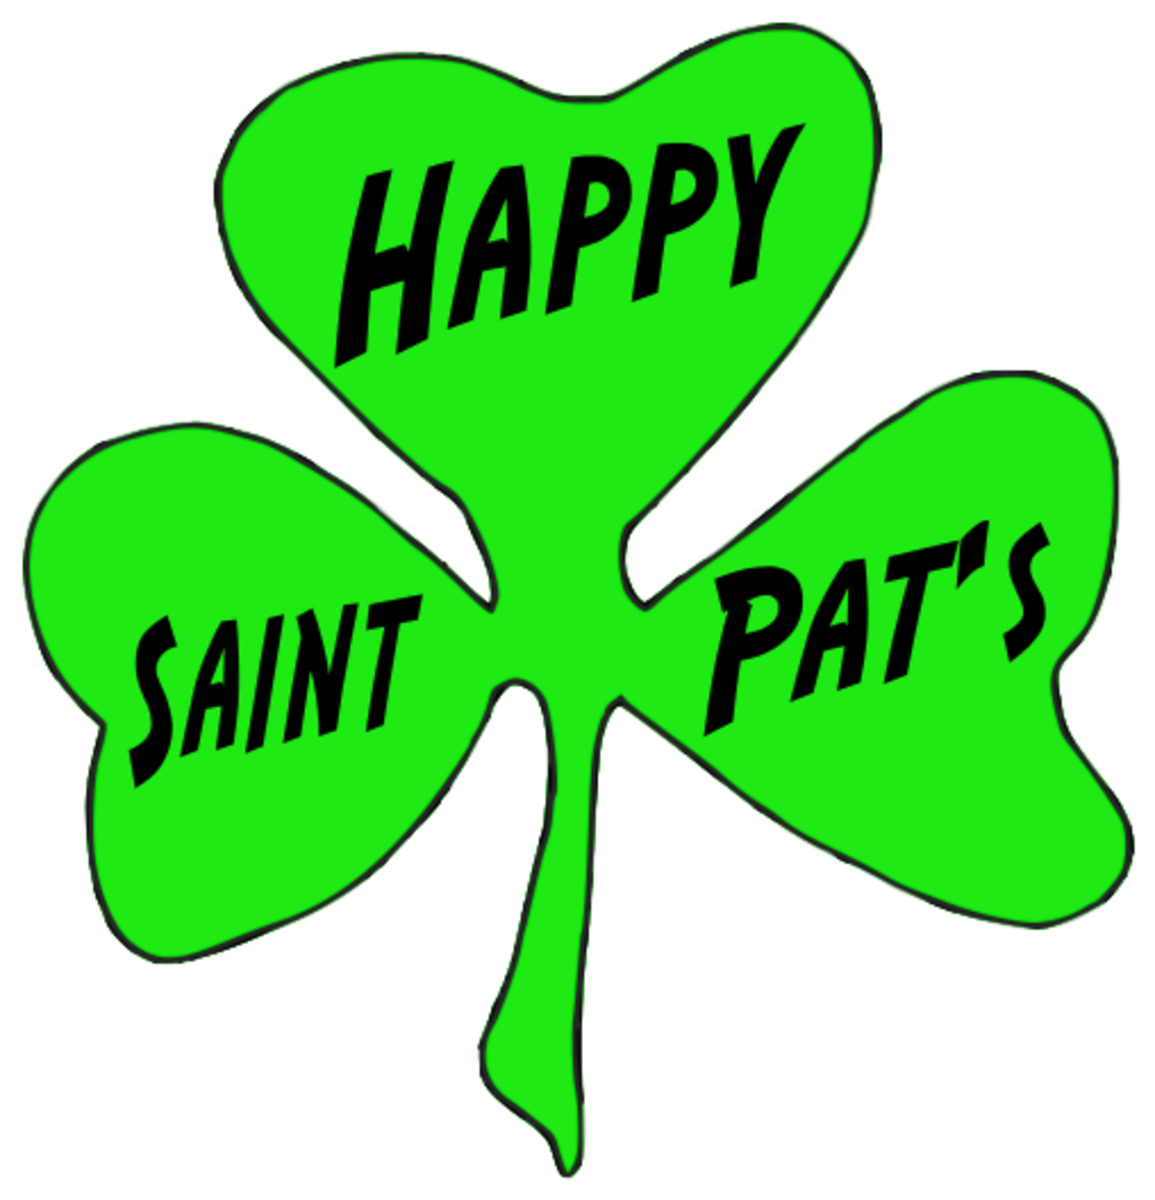 'Happy Saint Pat's' on a Shamrock